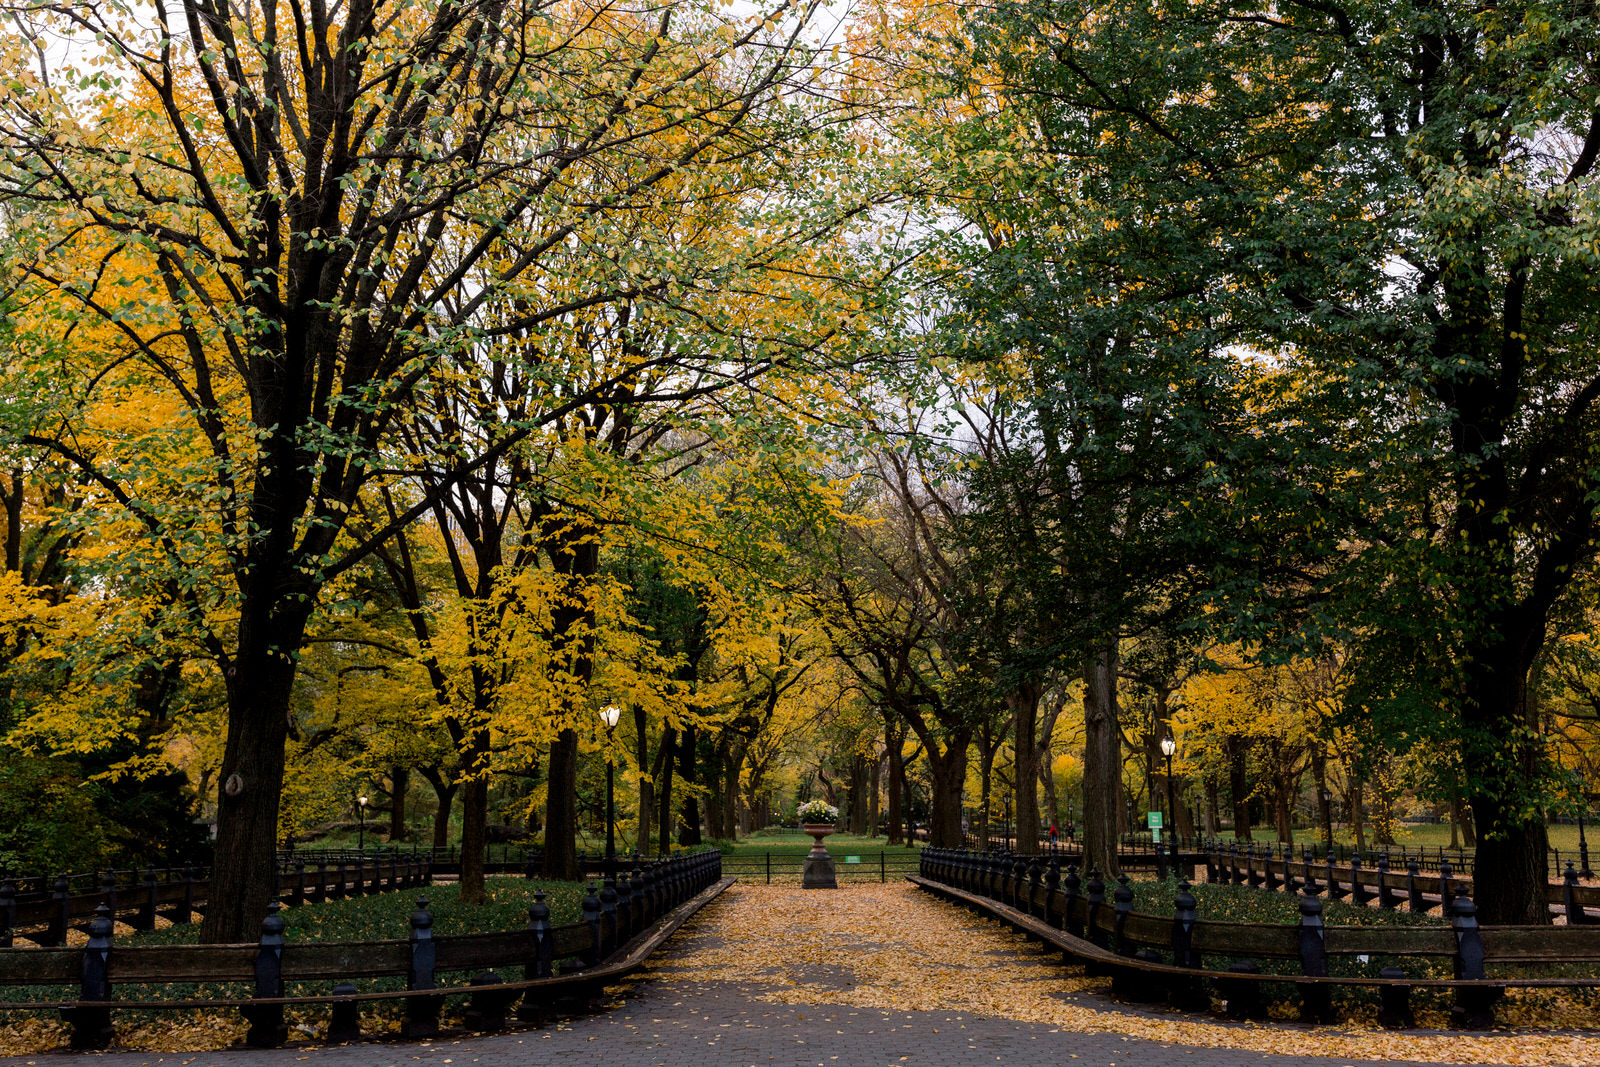 The Literary Walk and The Mall in Central Park during the Fall